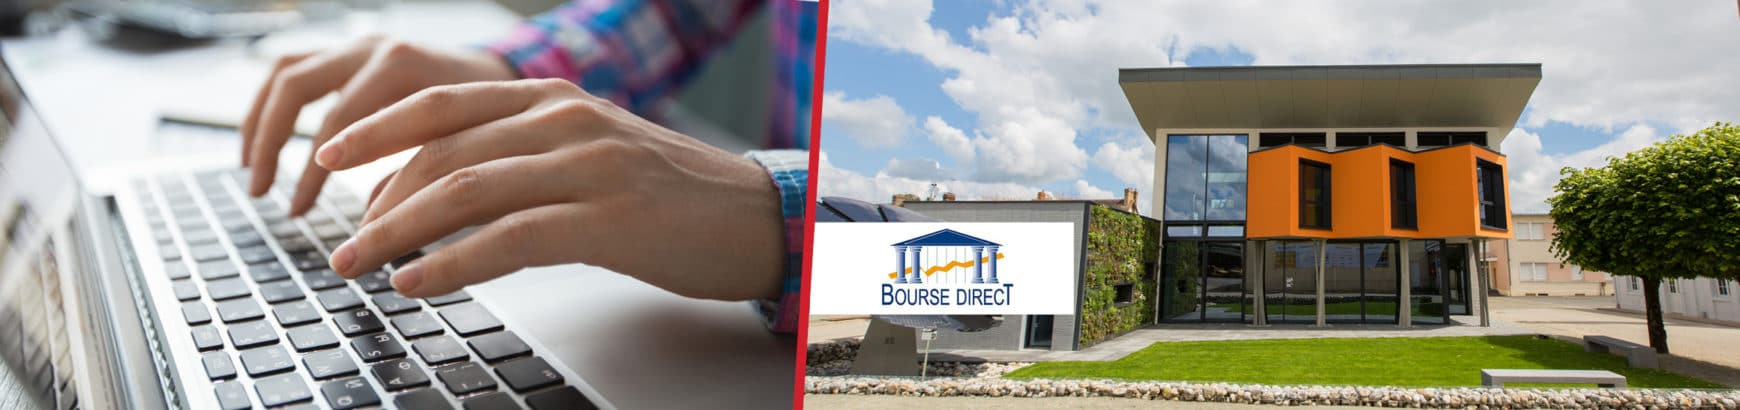 Bourse Direct : MFC explore les pistes de la maison de demain